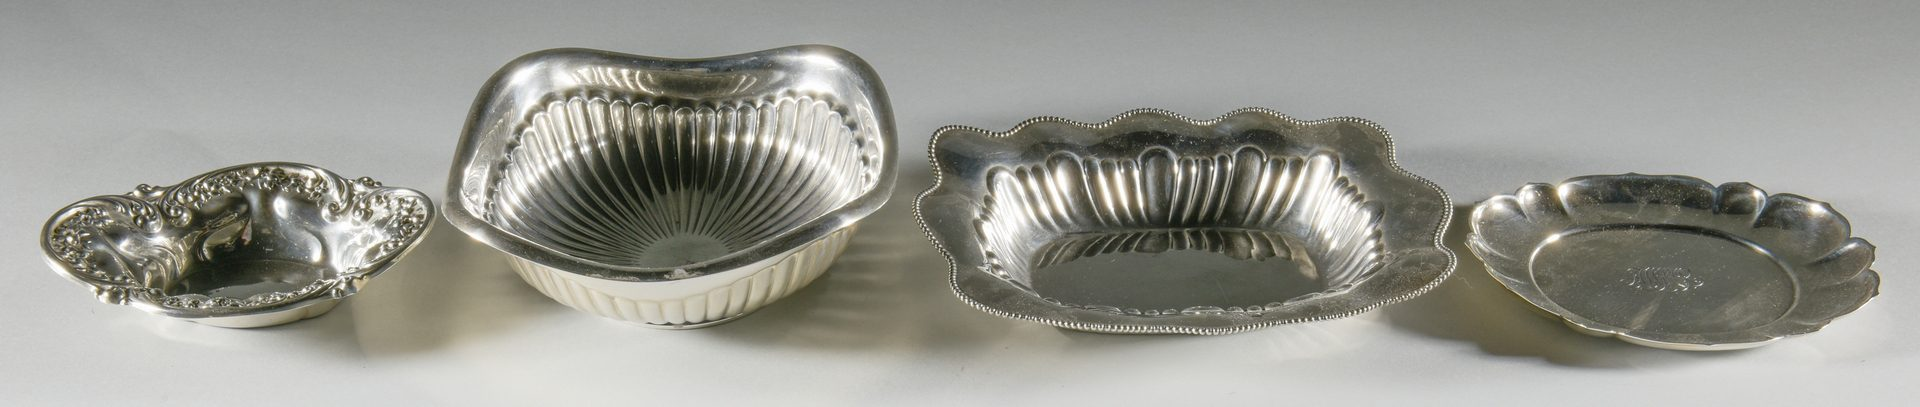 Lot 908: 4 Small Sterling Bowls